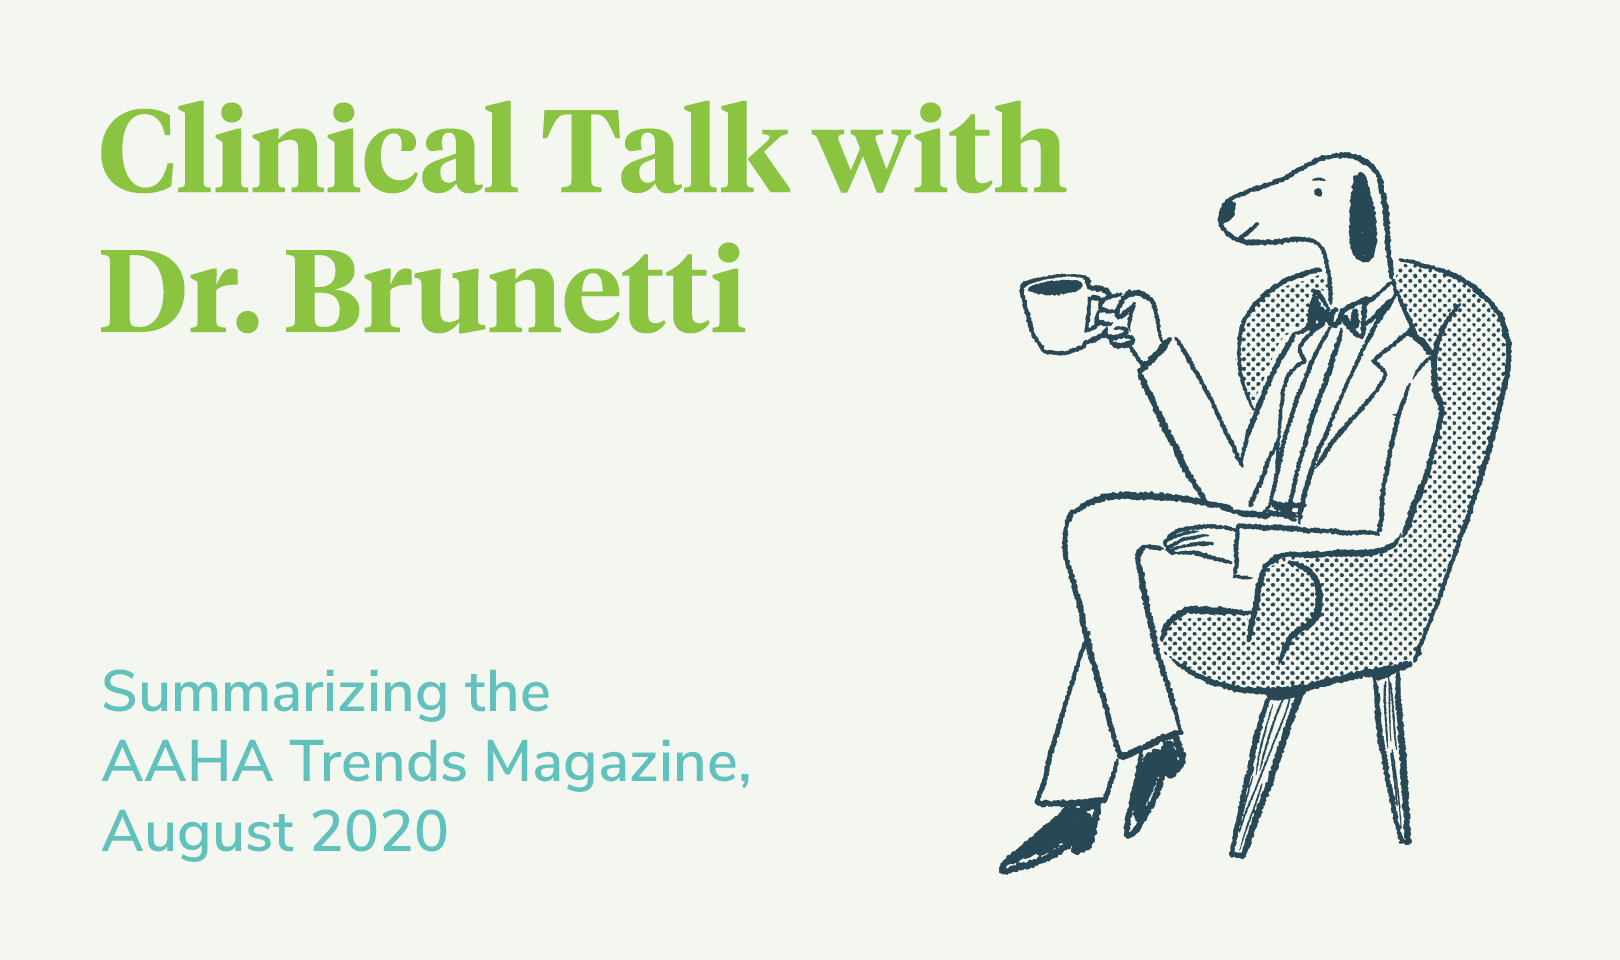 Clinical Talk with Dr. Brunetti - August 2020